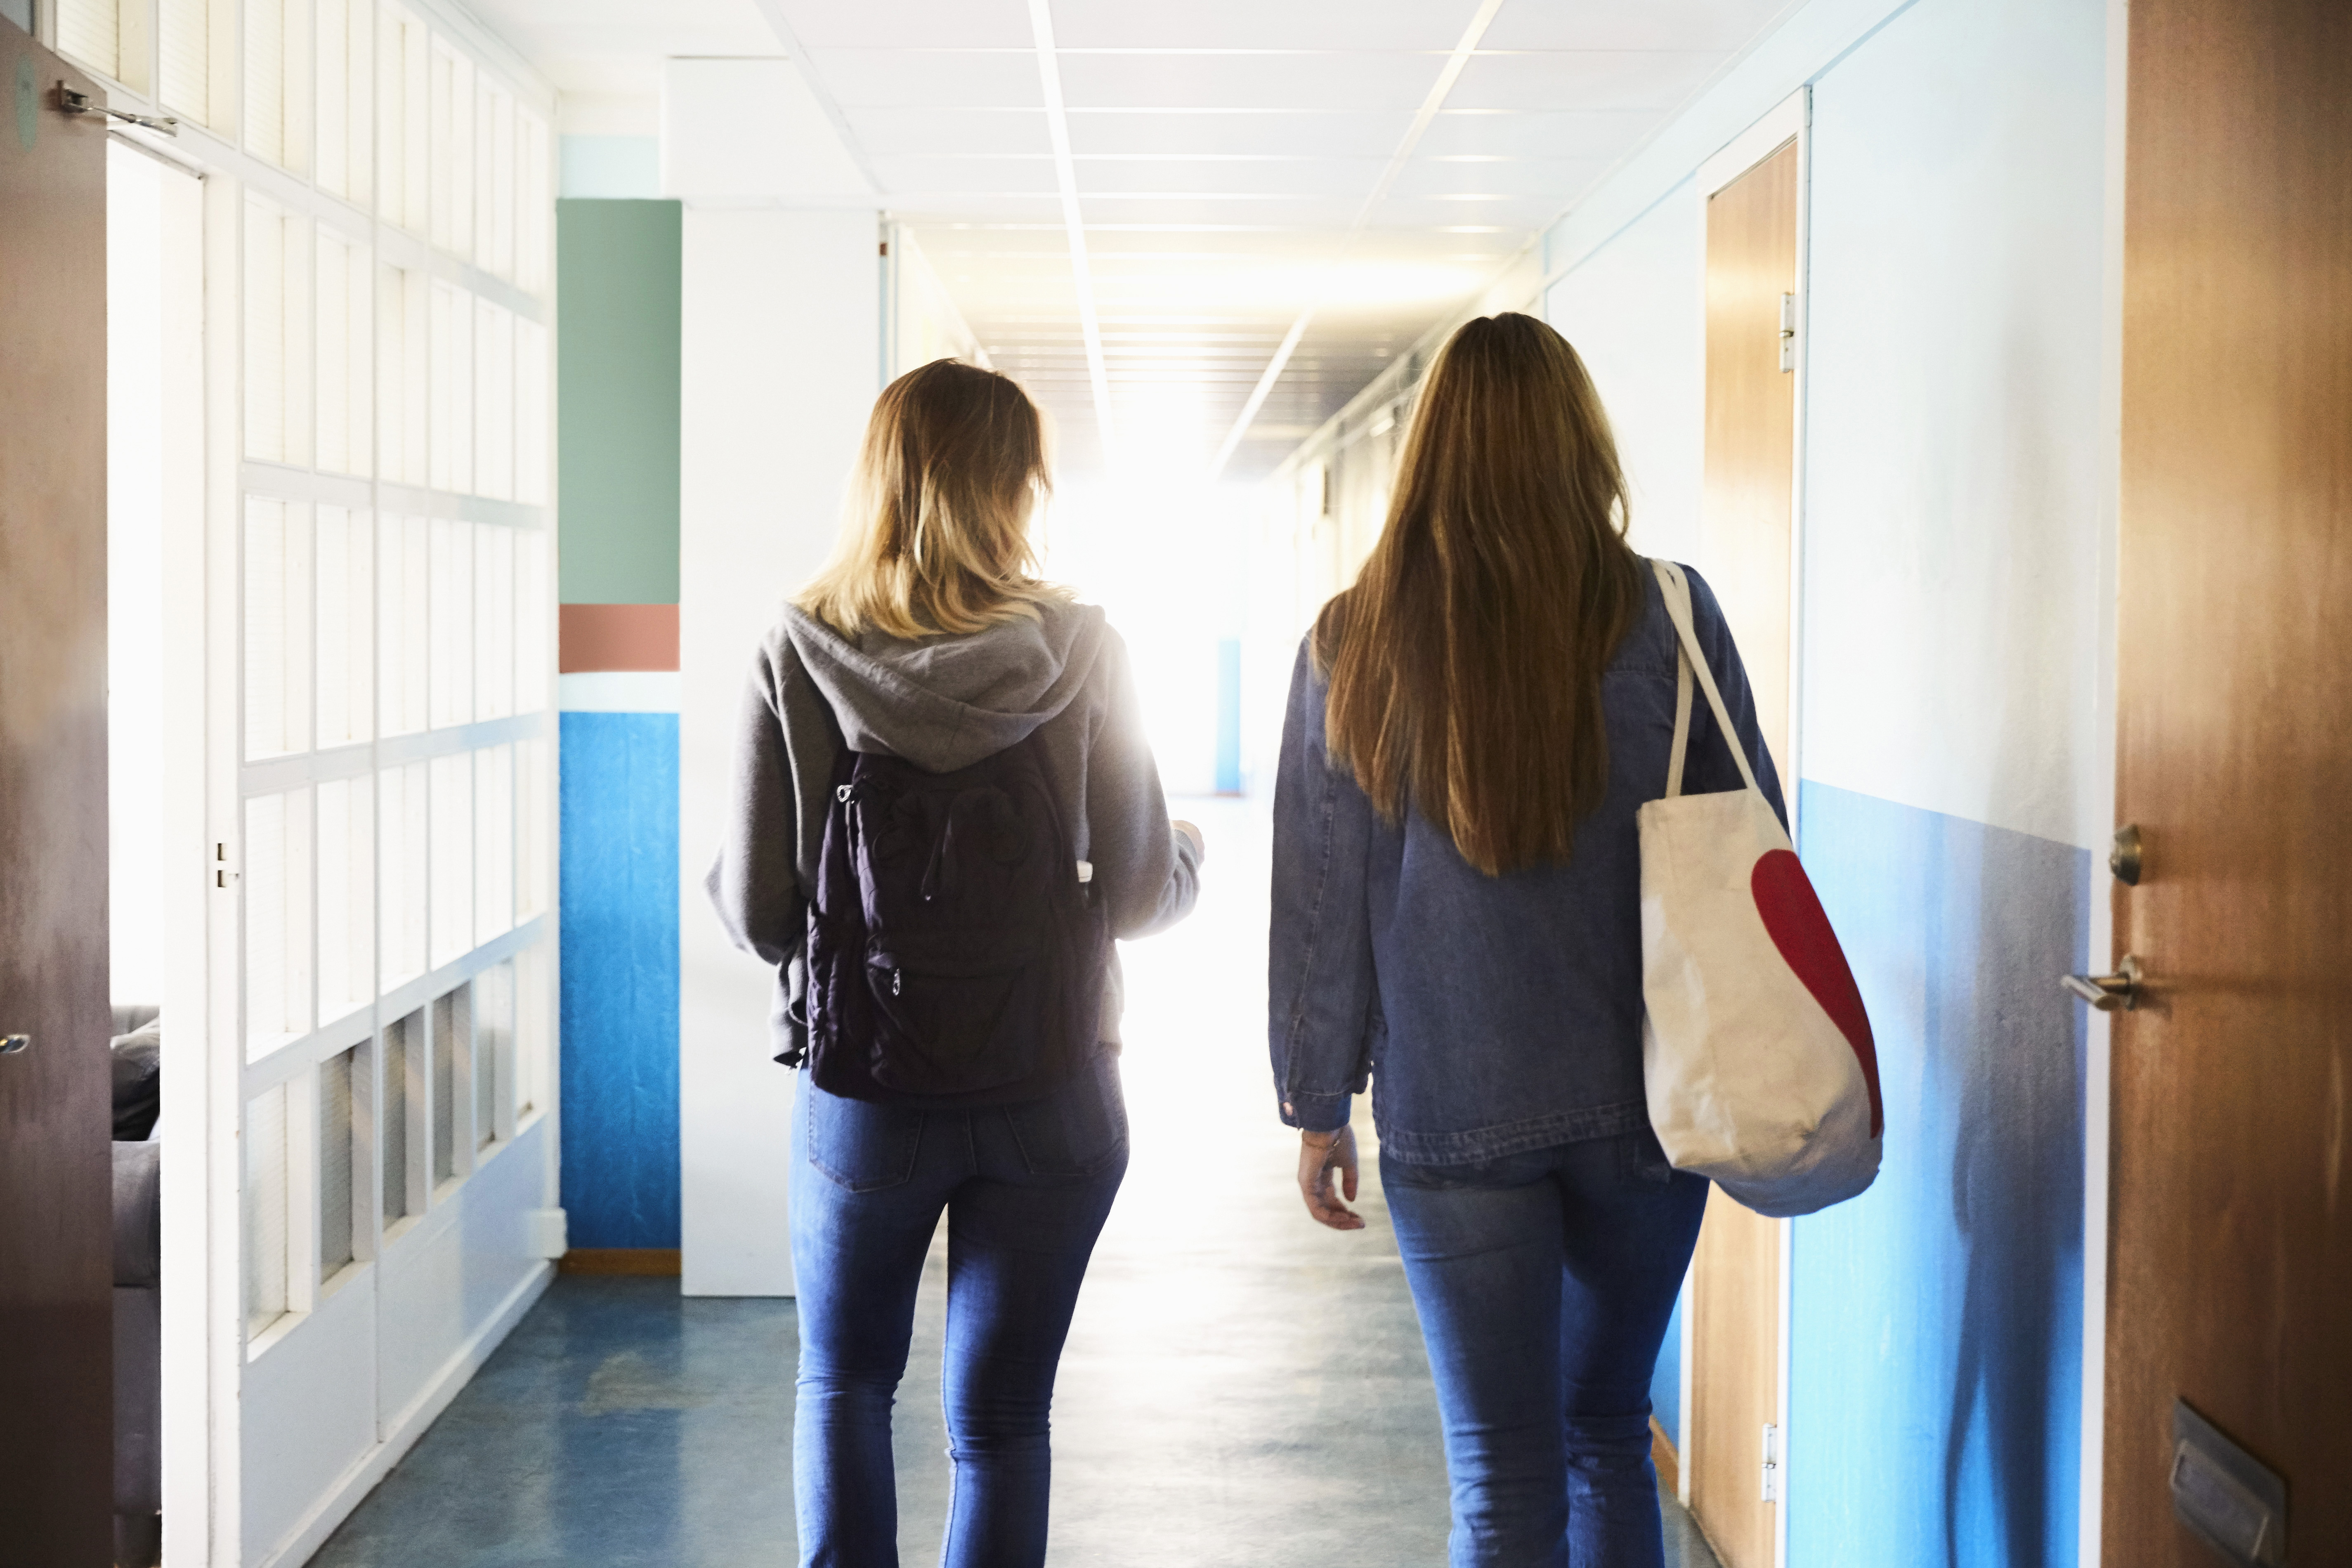 My high school abolished its sexist dress code. Things got better.